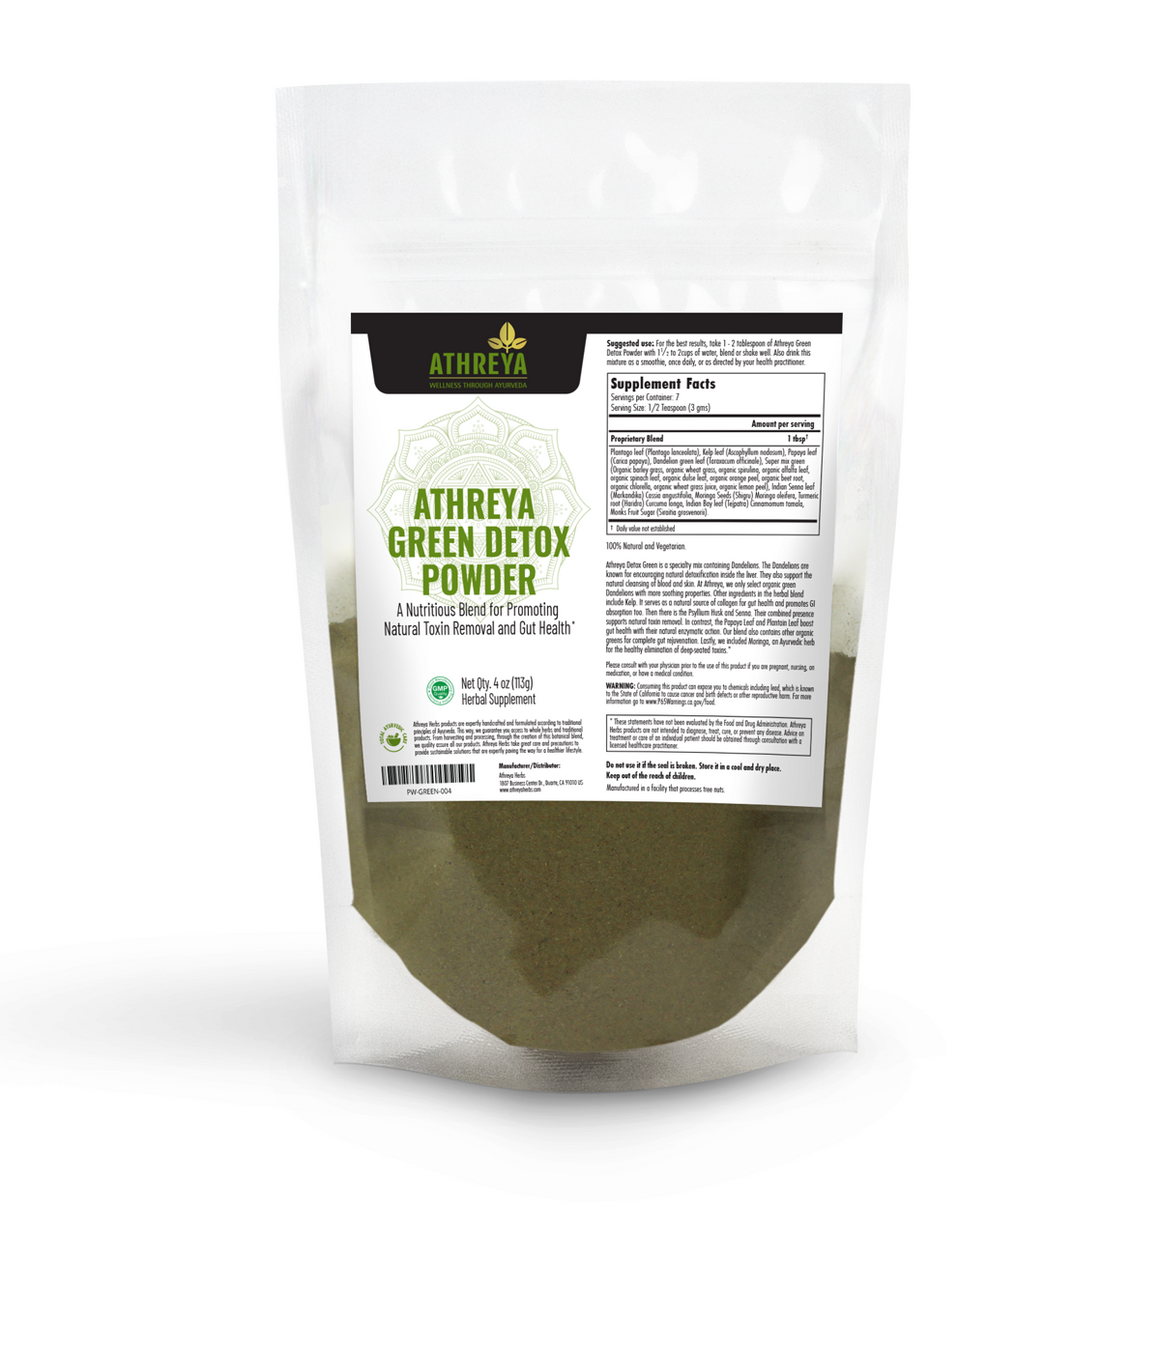 Athreya Green Detox Powder